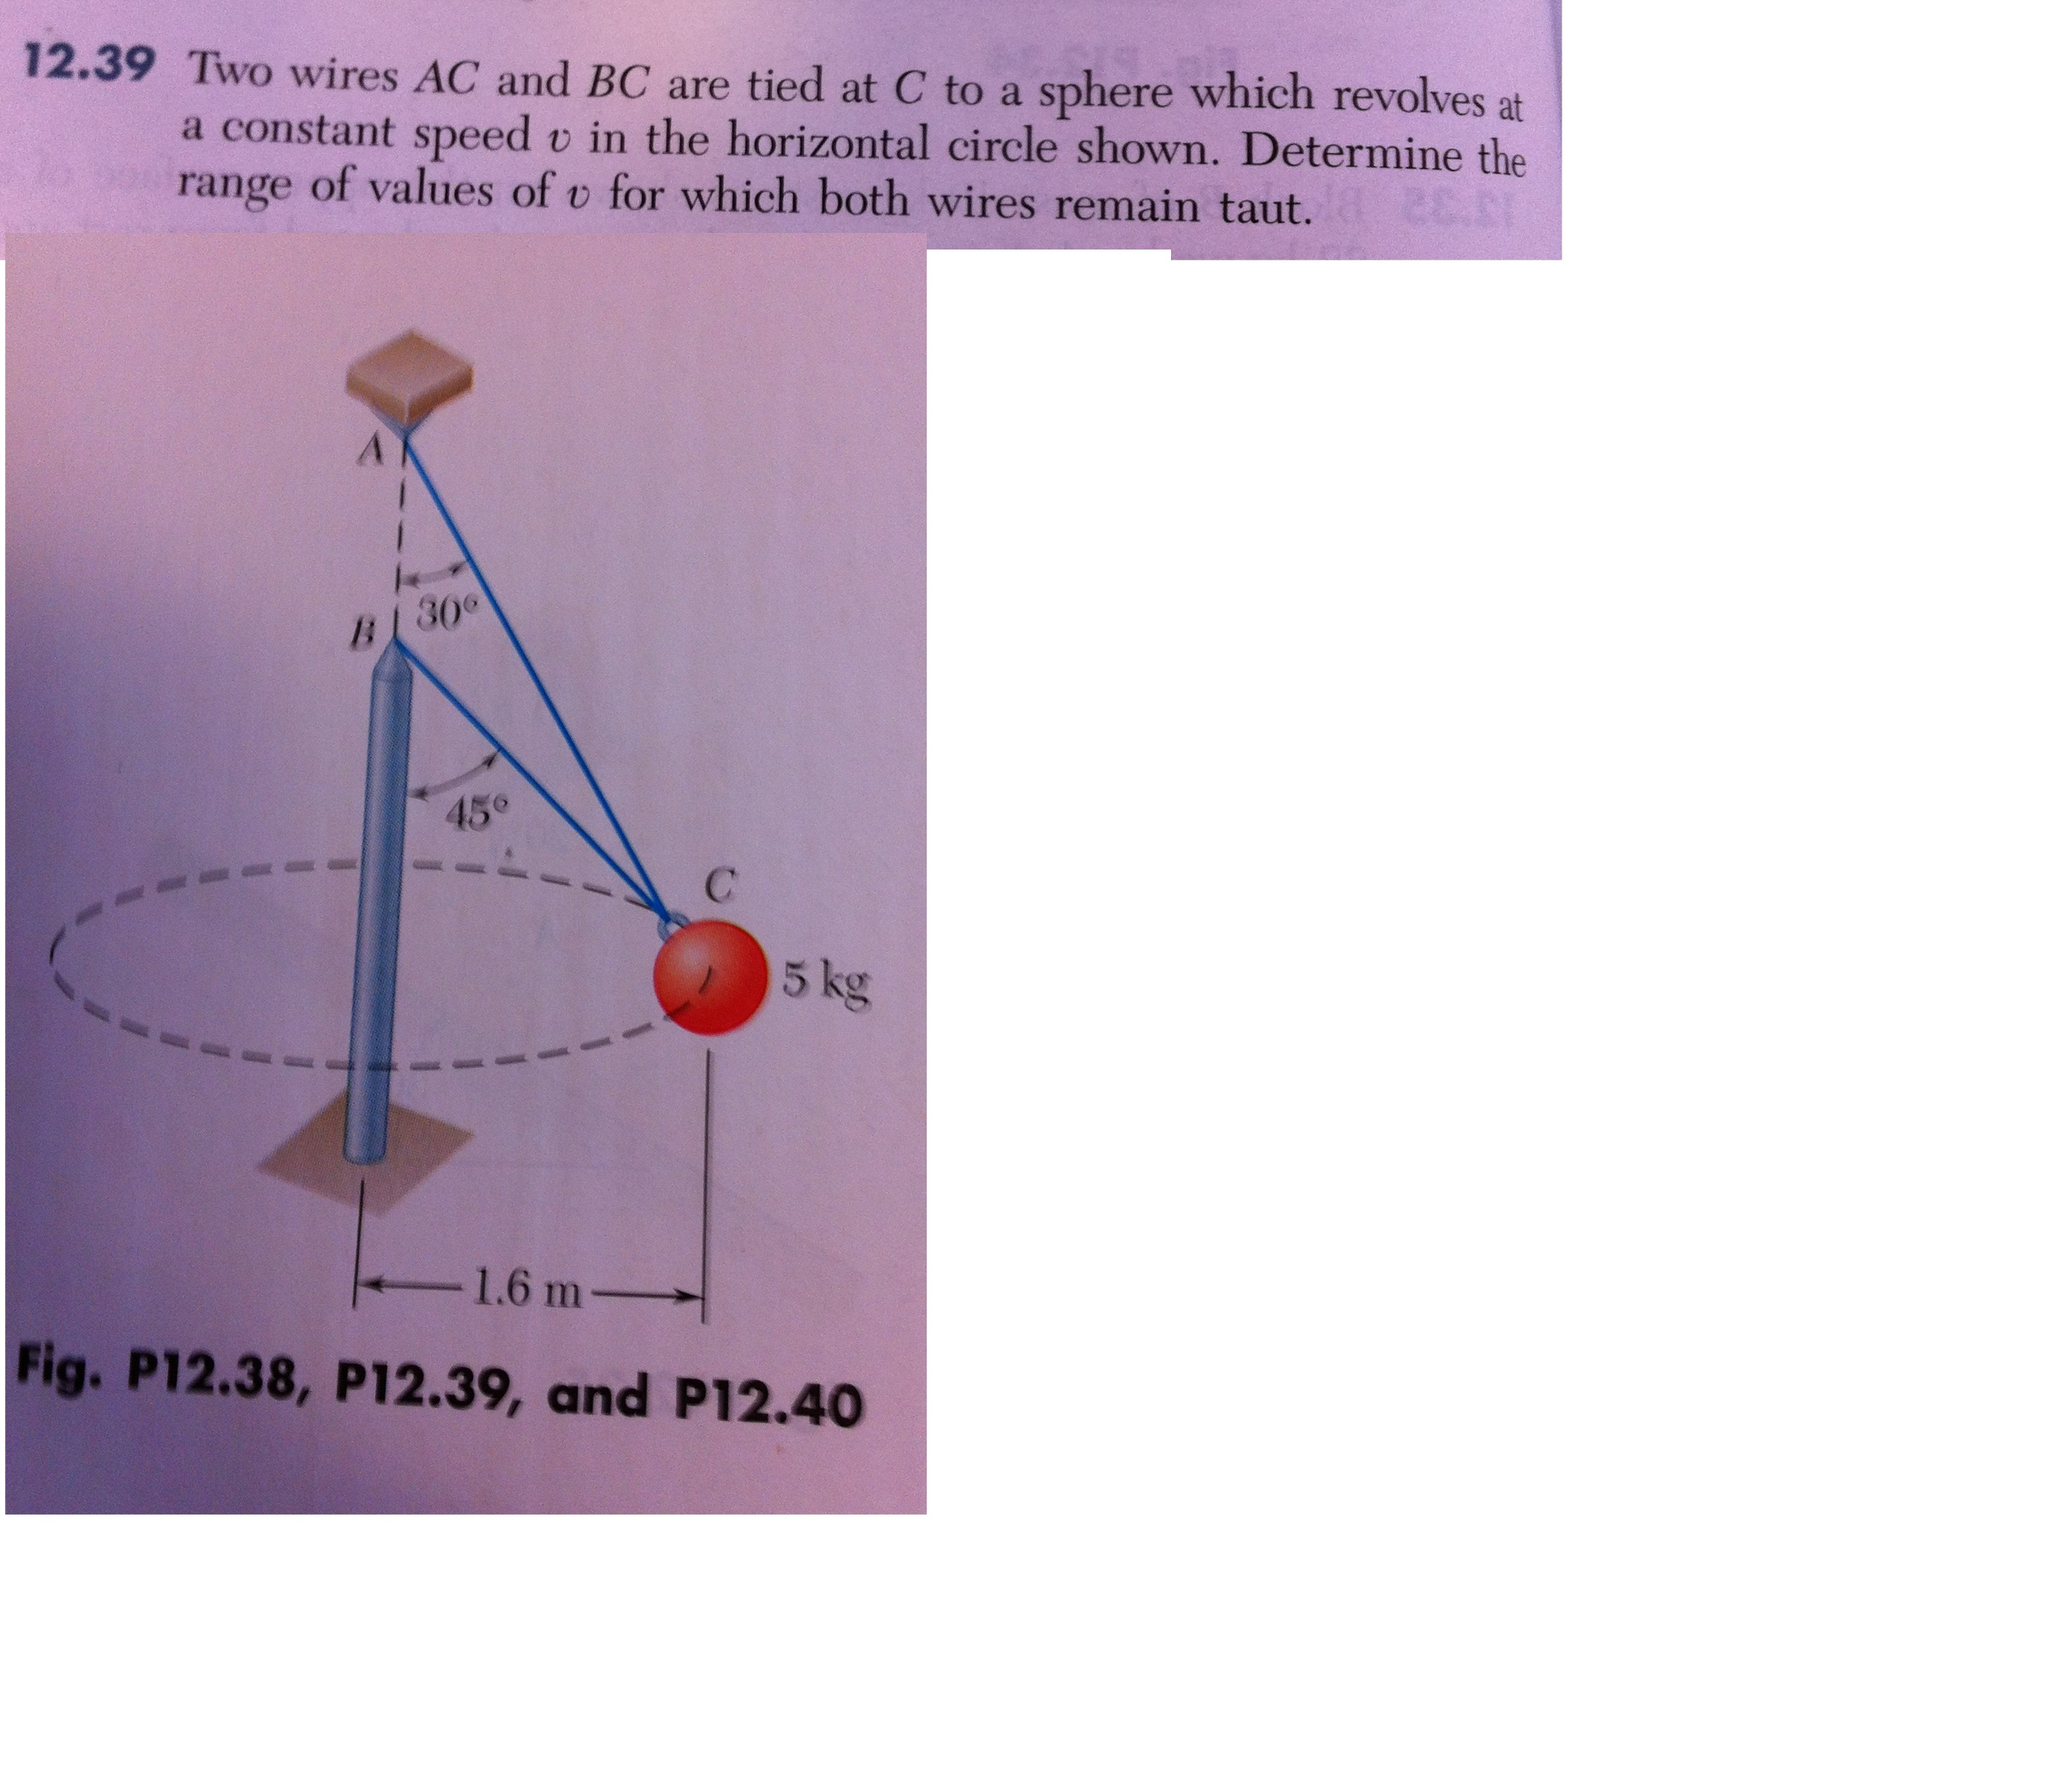 Two wires AC and BC are tied at C to a sphere whic